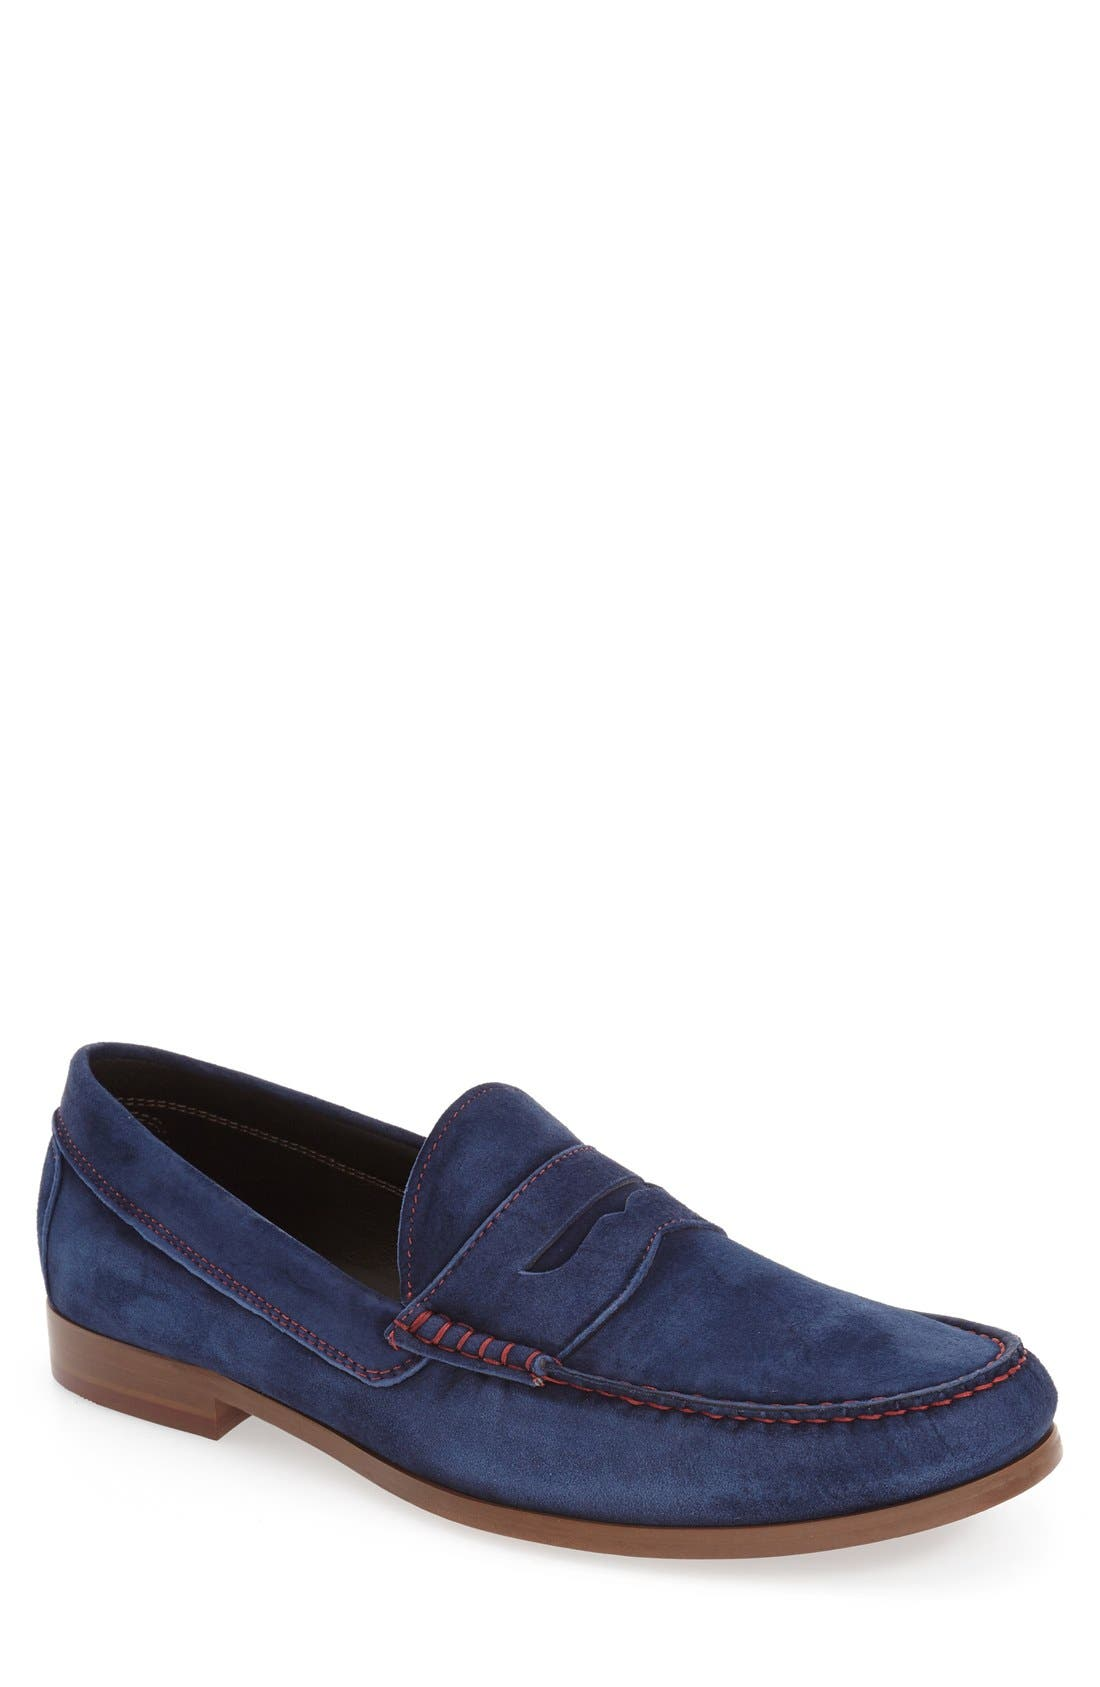 Nicola Penny Loafer,                             Main thumbnail 1, color,                             Navy Suede